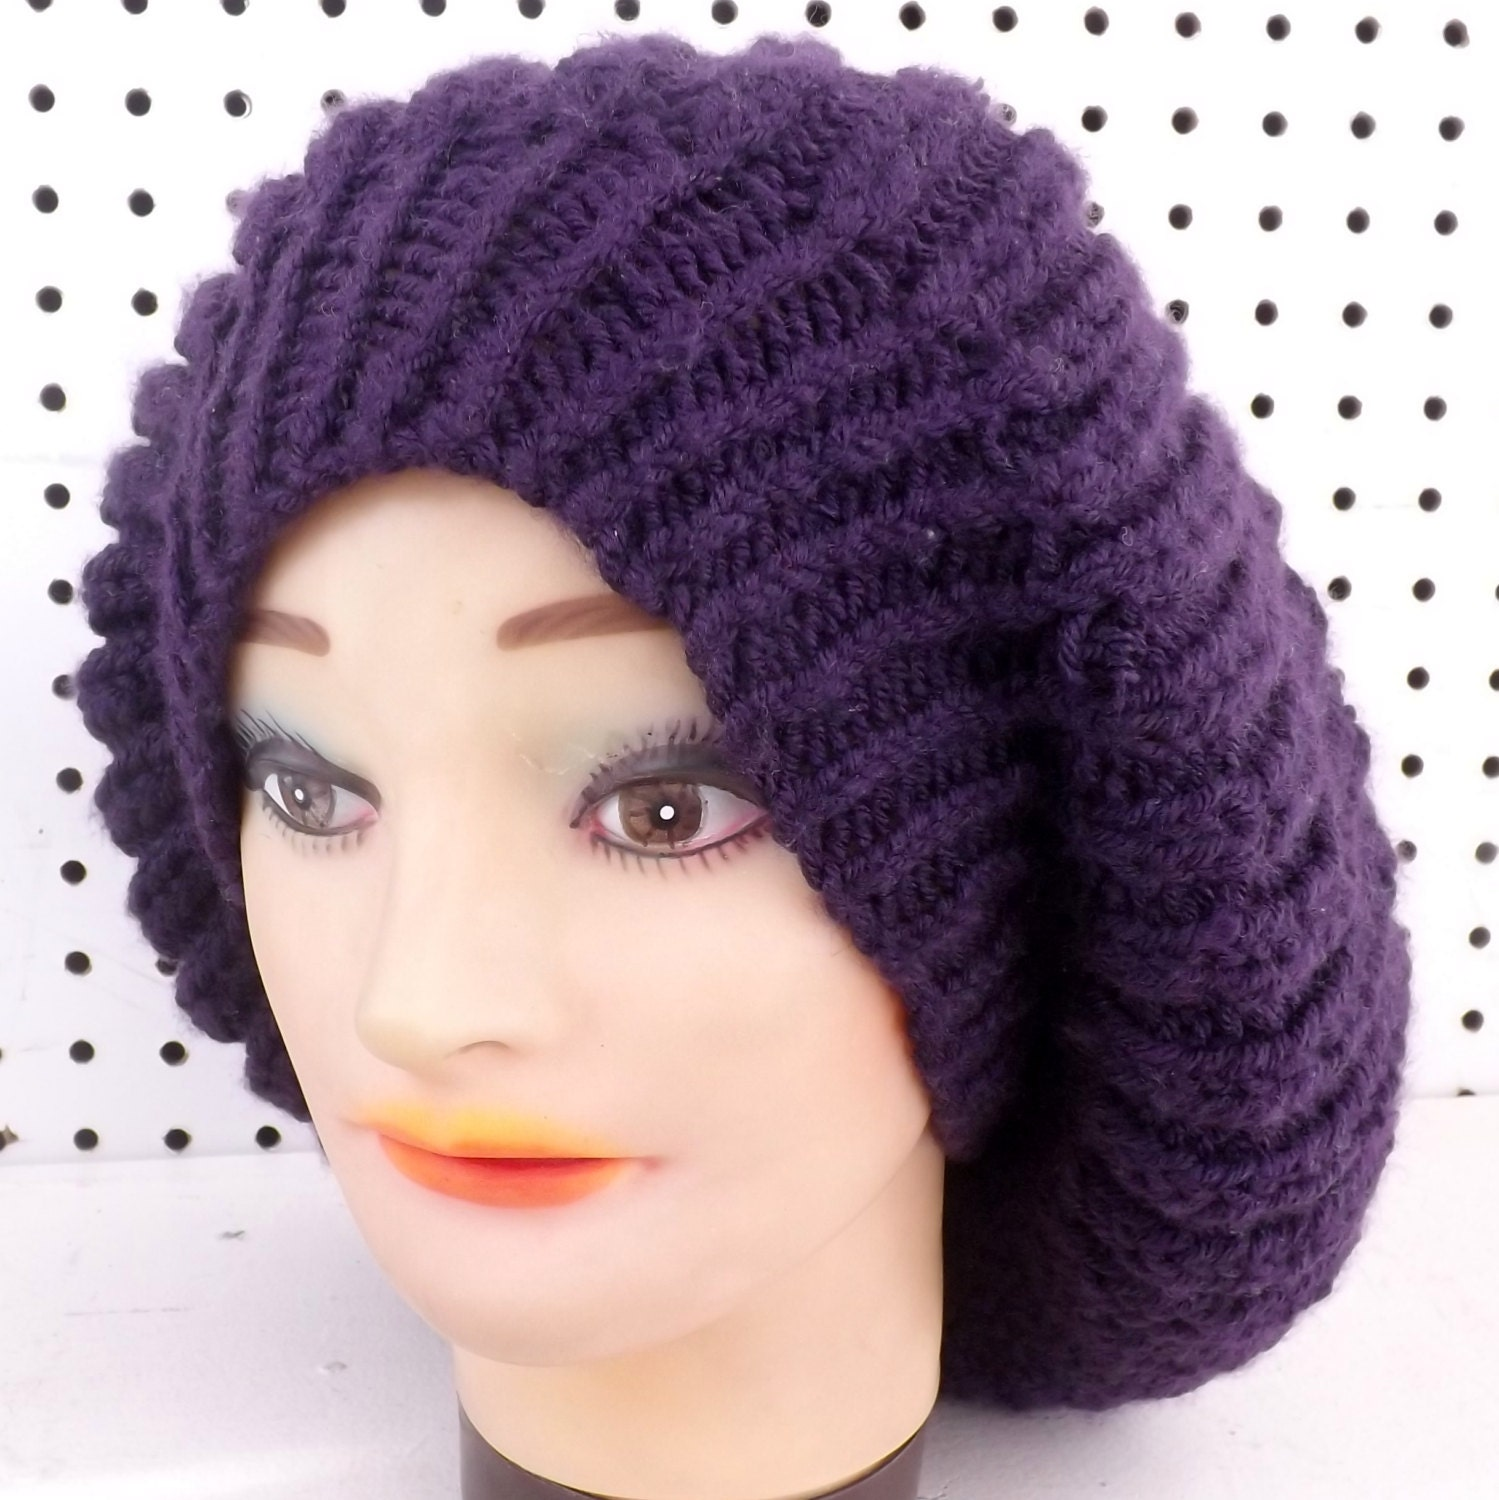 Knitted Beret Patterns : Knit Beret Hat Pattern Images - Frompo